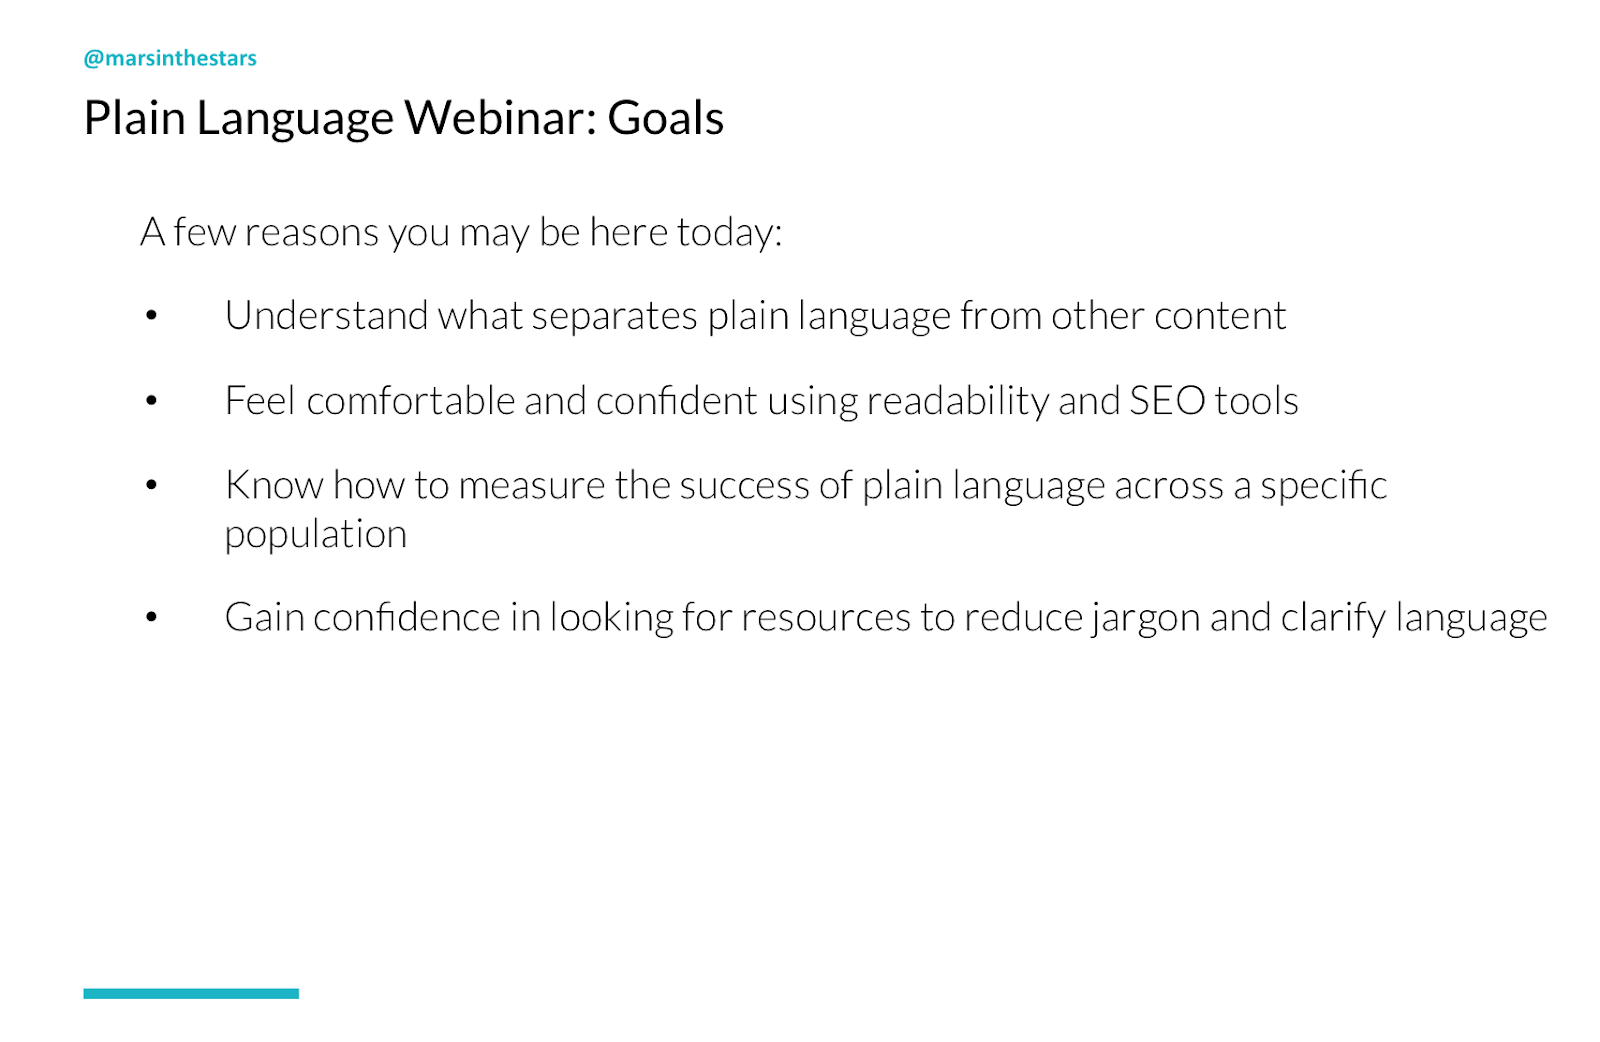 Slide shows webinar goals: A few reasons you may be here today. 1. Understand what separates plain language from other content 2. Feel comfortable and confident using readability and SEO tools 3. Know how to measure the success of plain language across a specific population 4. Gain confidence in looking for resources to reduce jargon and clarify language.